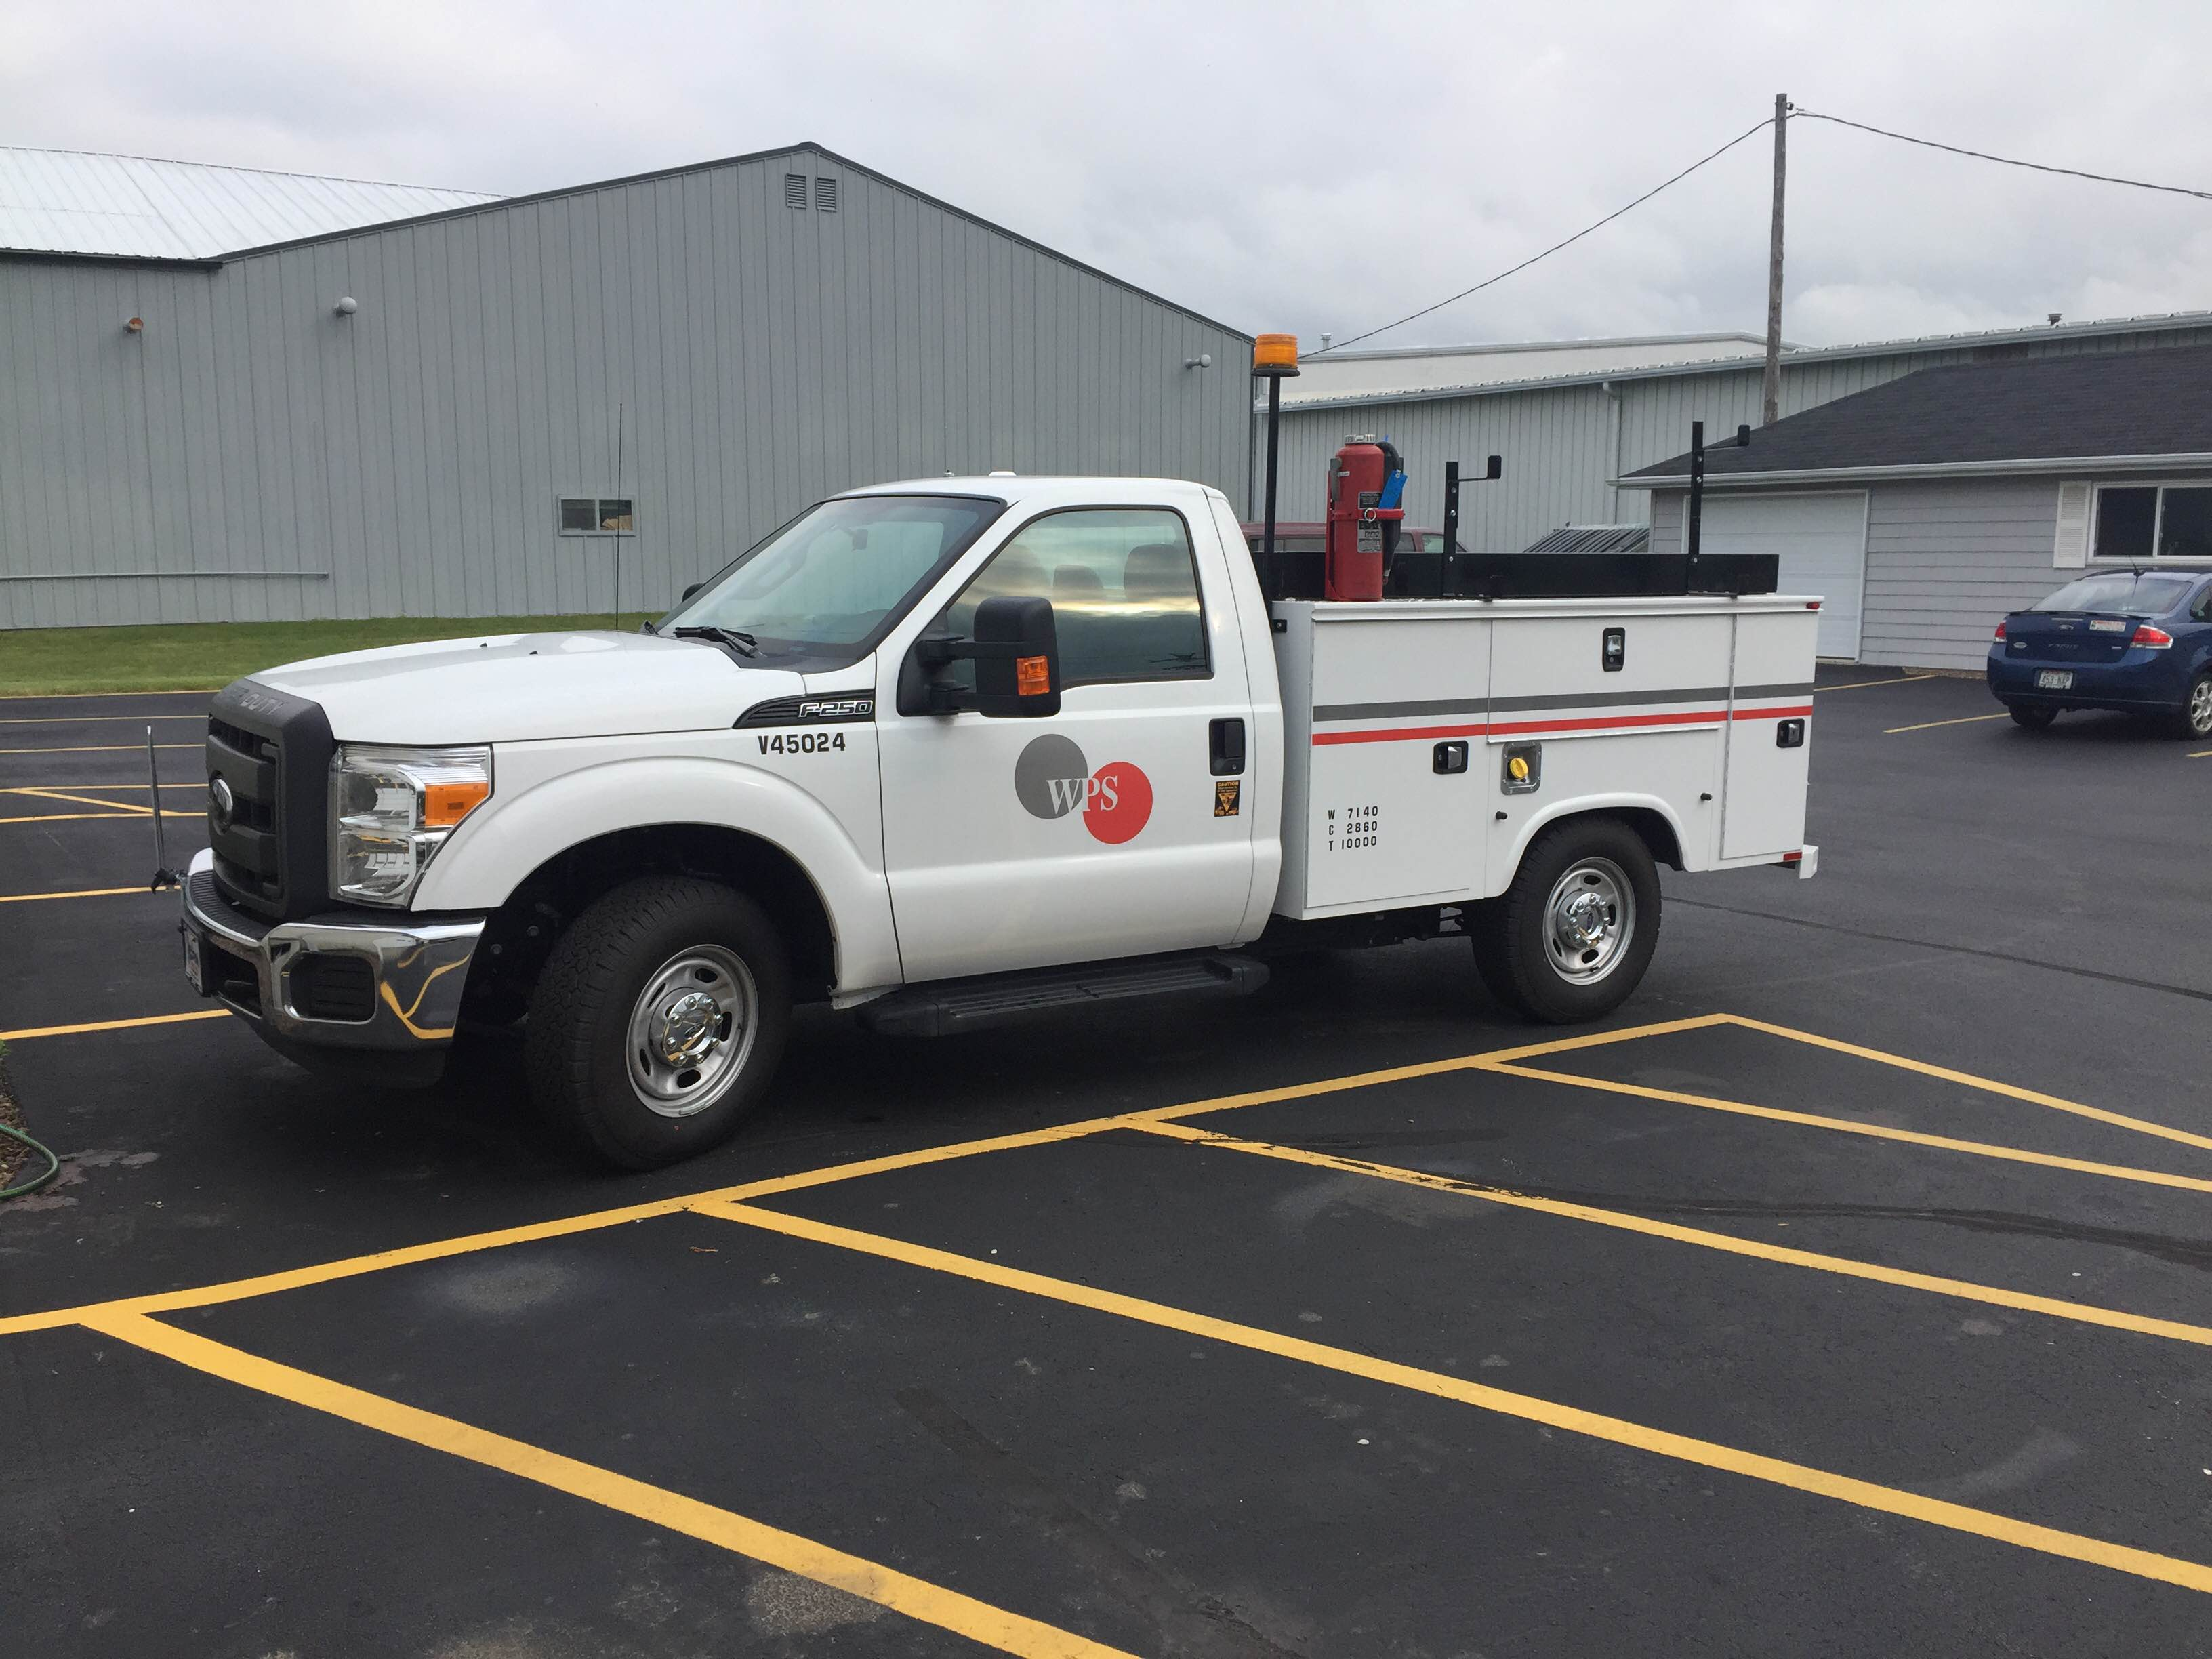 CNG Technologies conversions fueling service training